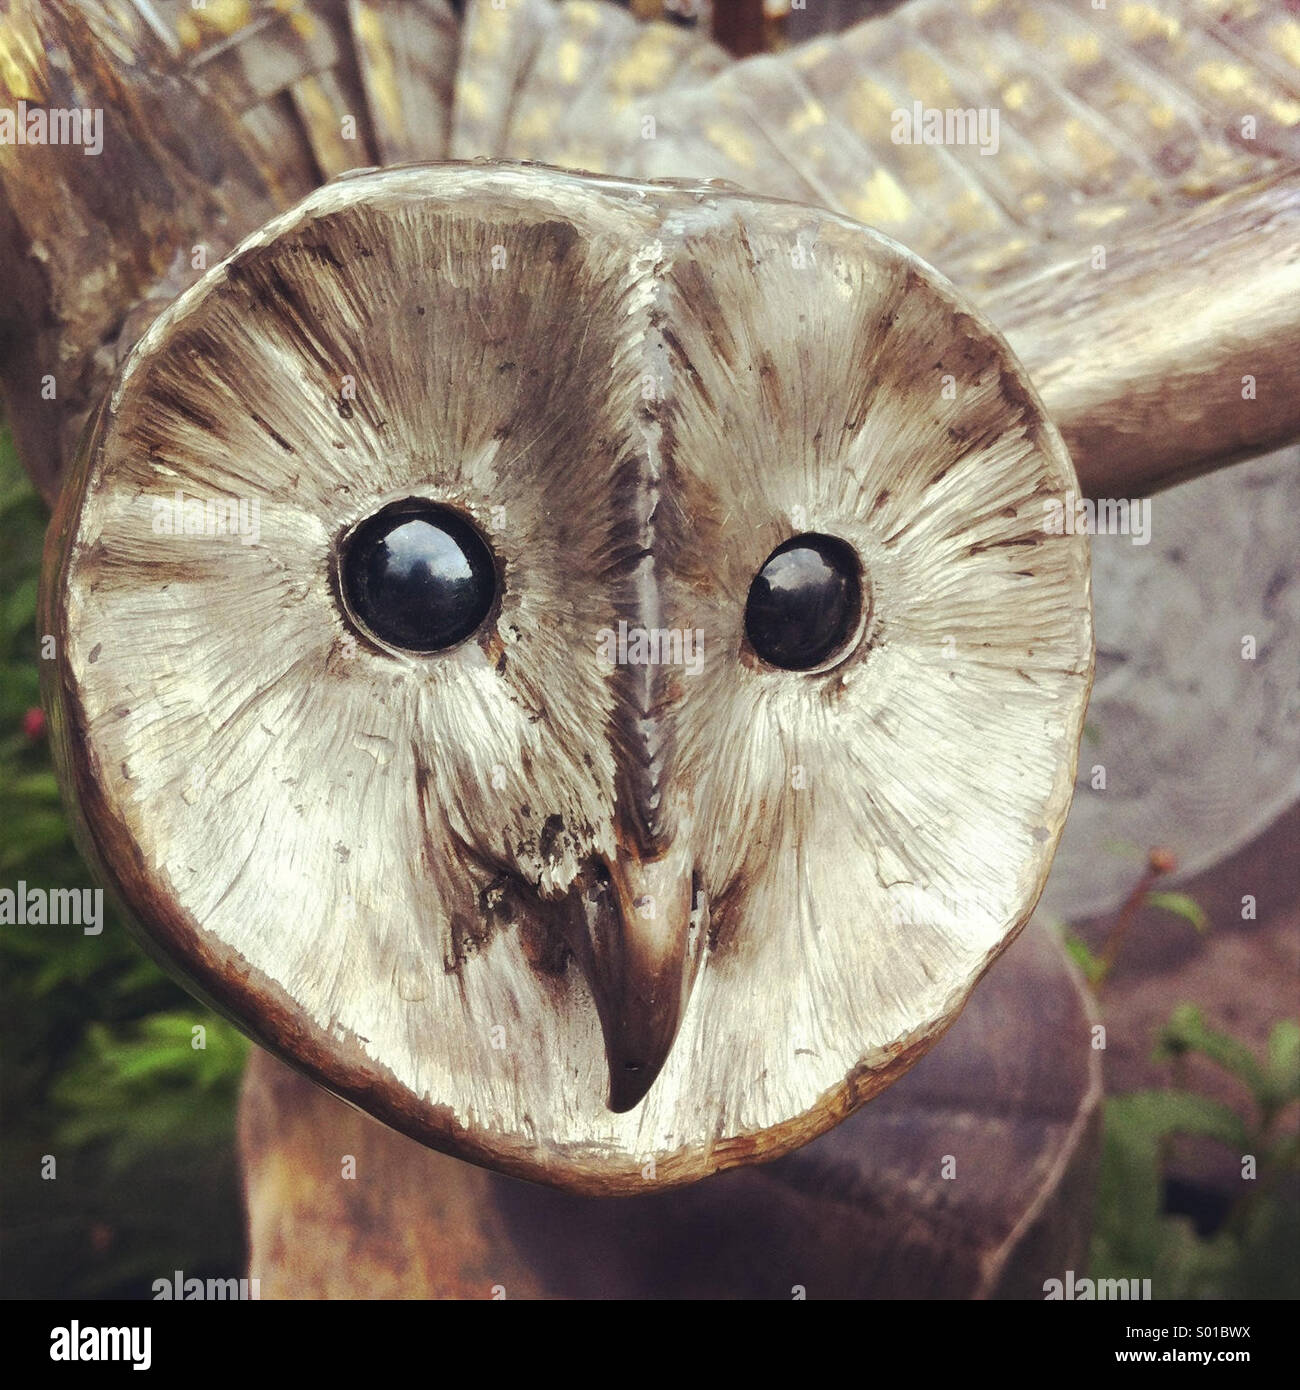 Sculpture of owl - Stock Image